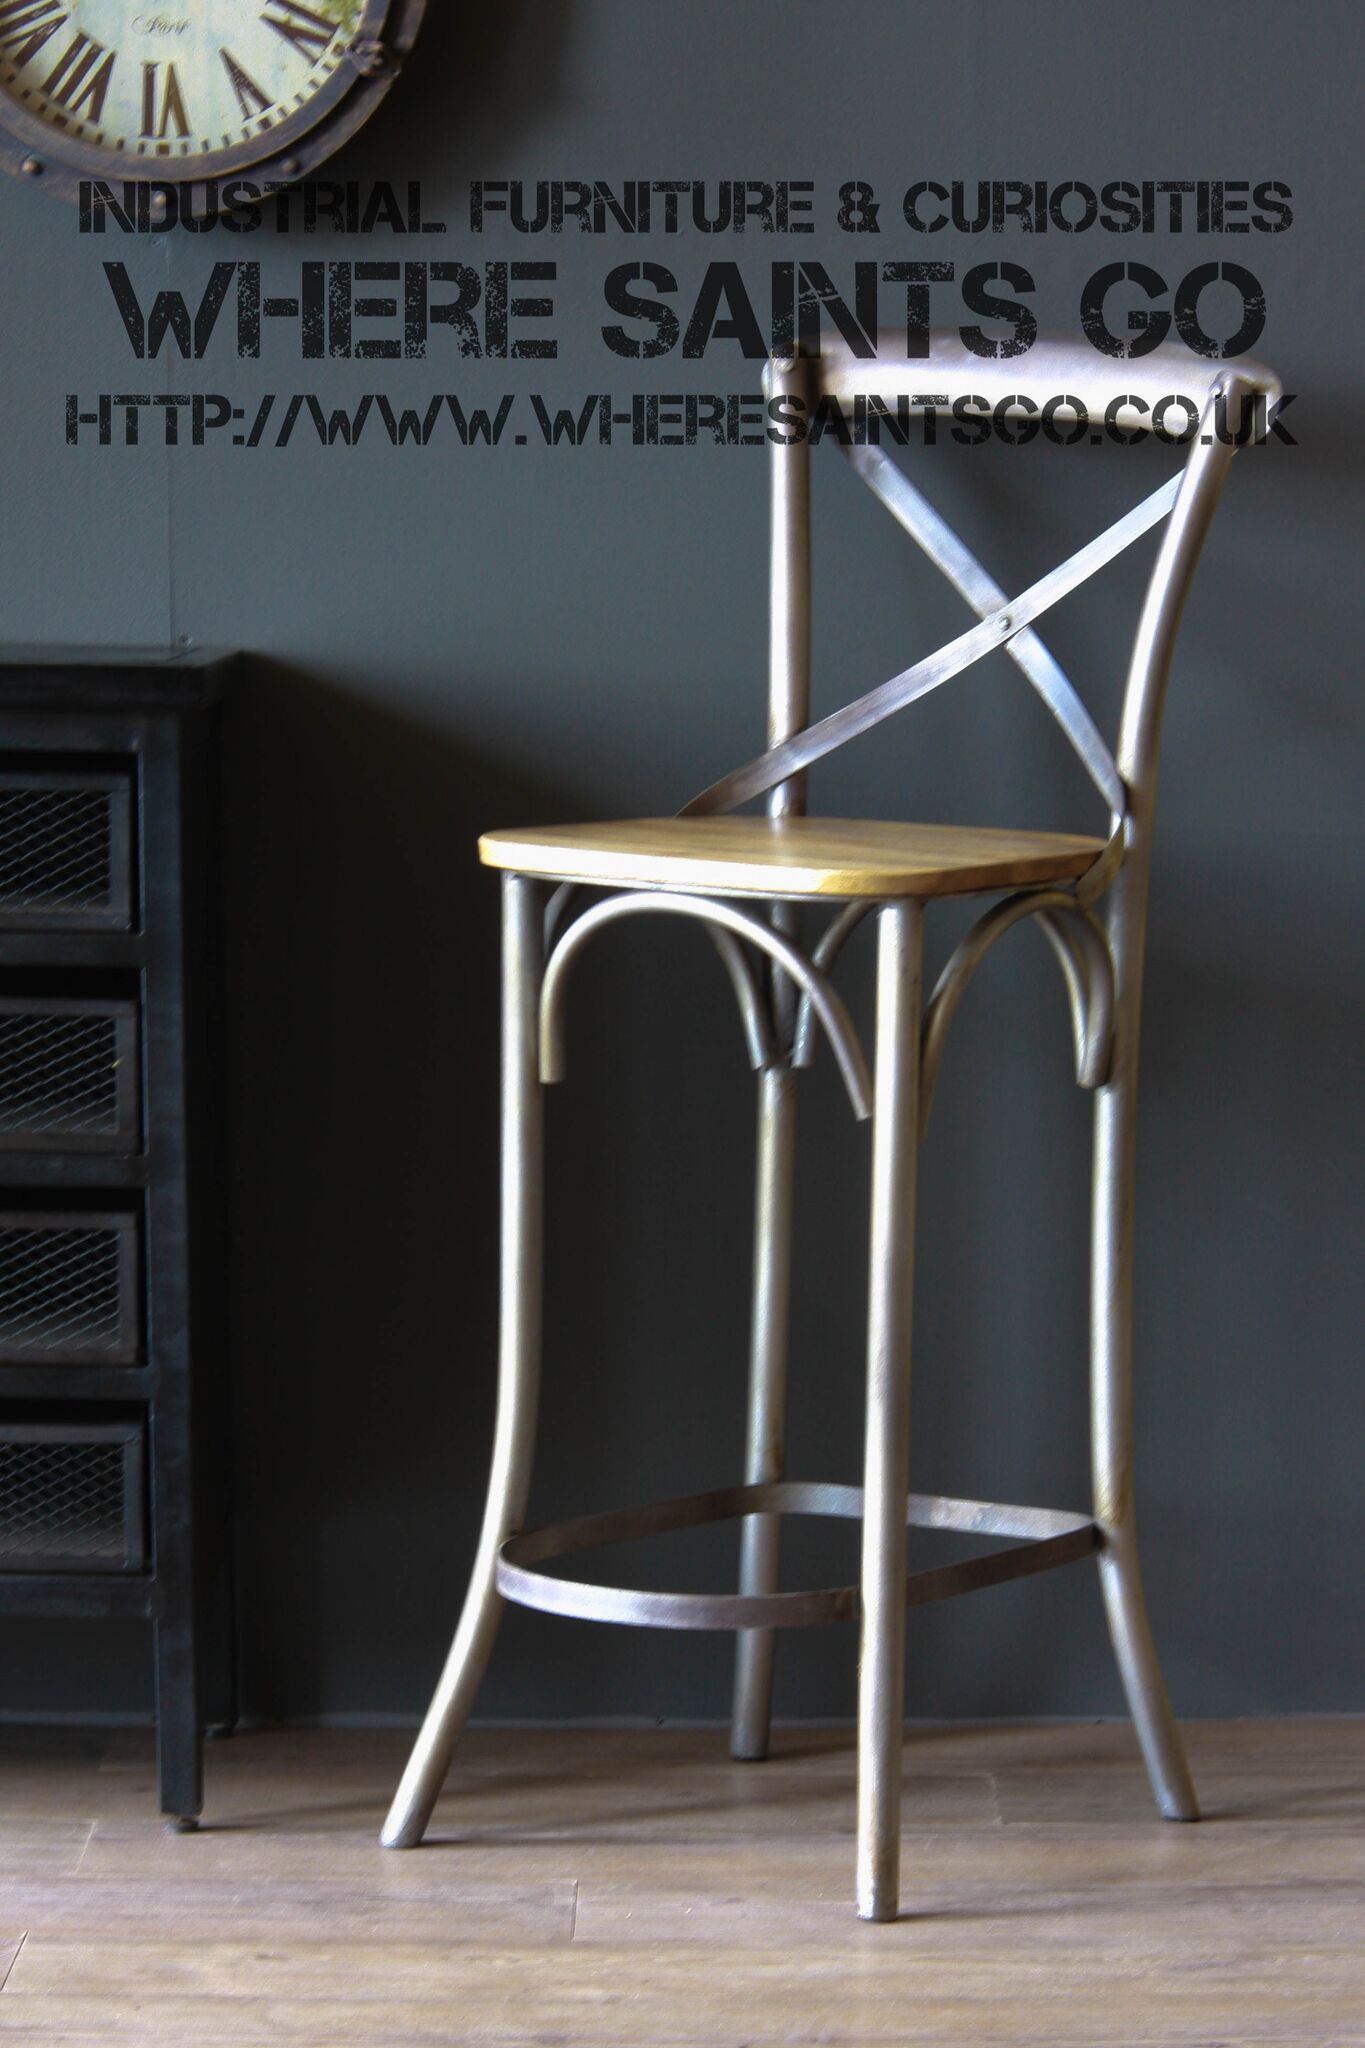 The Farmhouse Bar Stool Is Based On The Iconic Cross